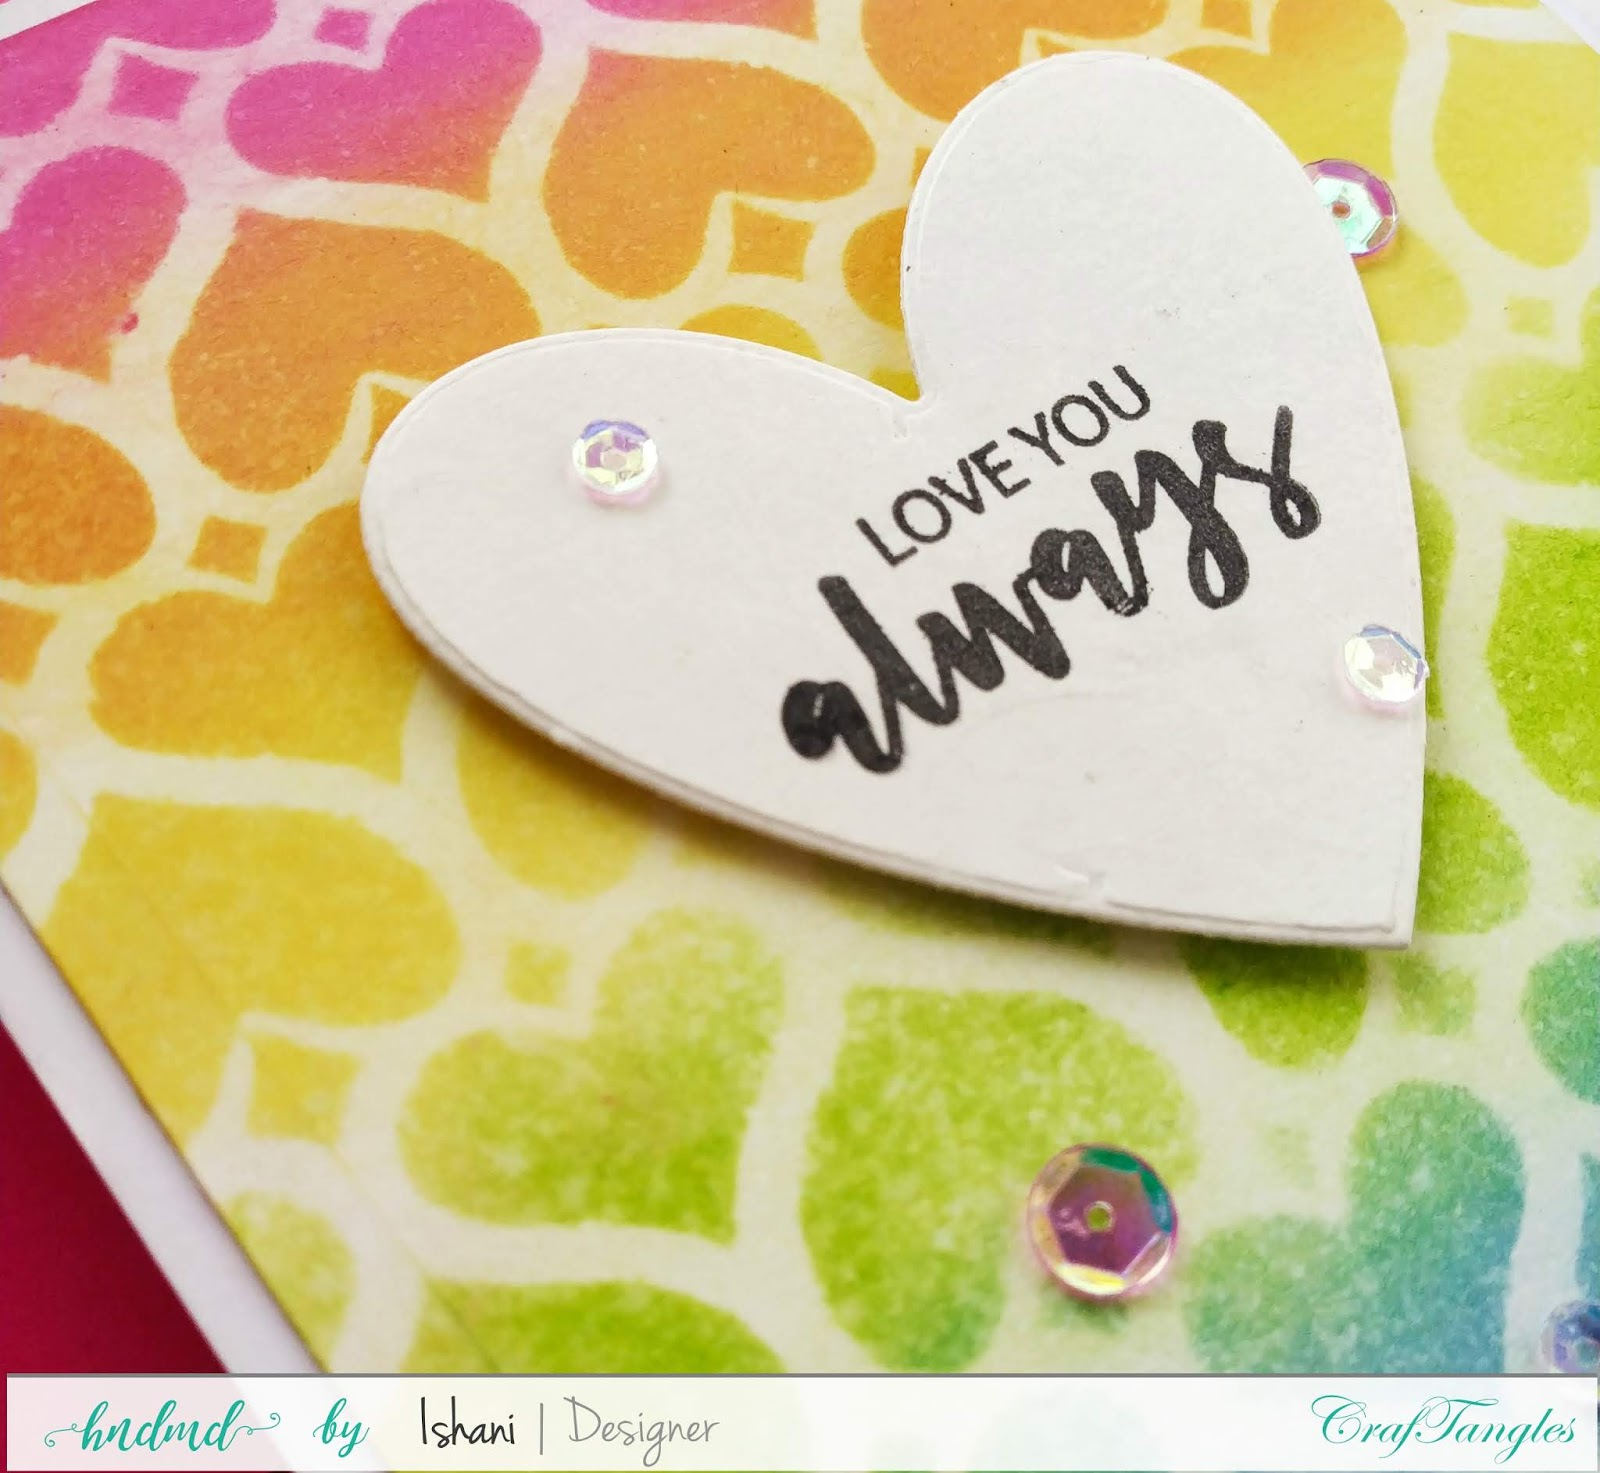 CrafTangles Monthly Challenge - January 2020 - Love 5